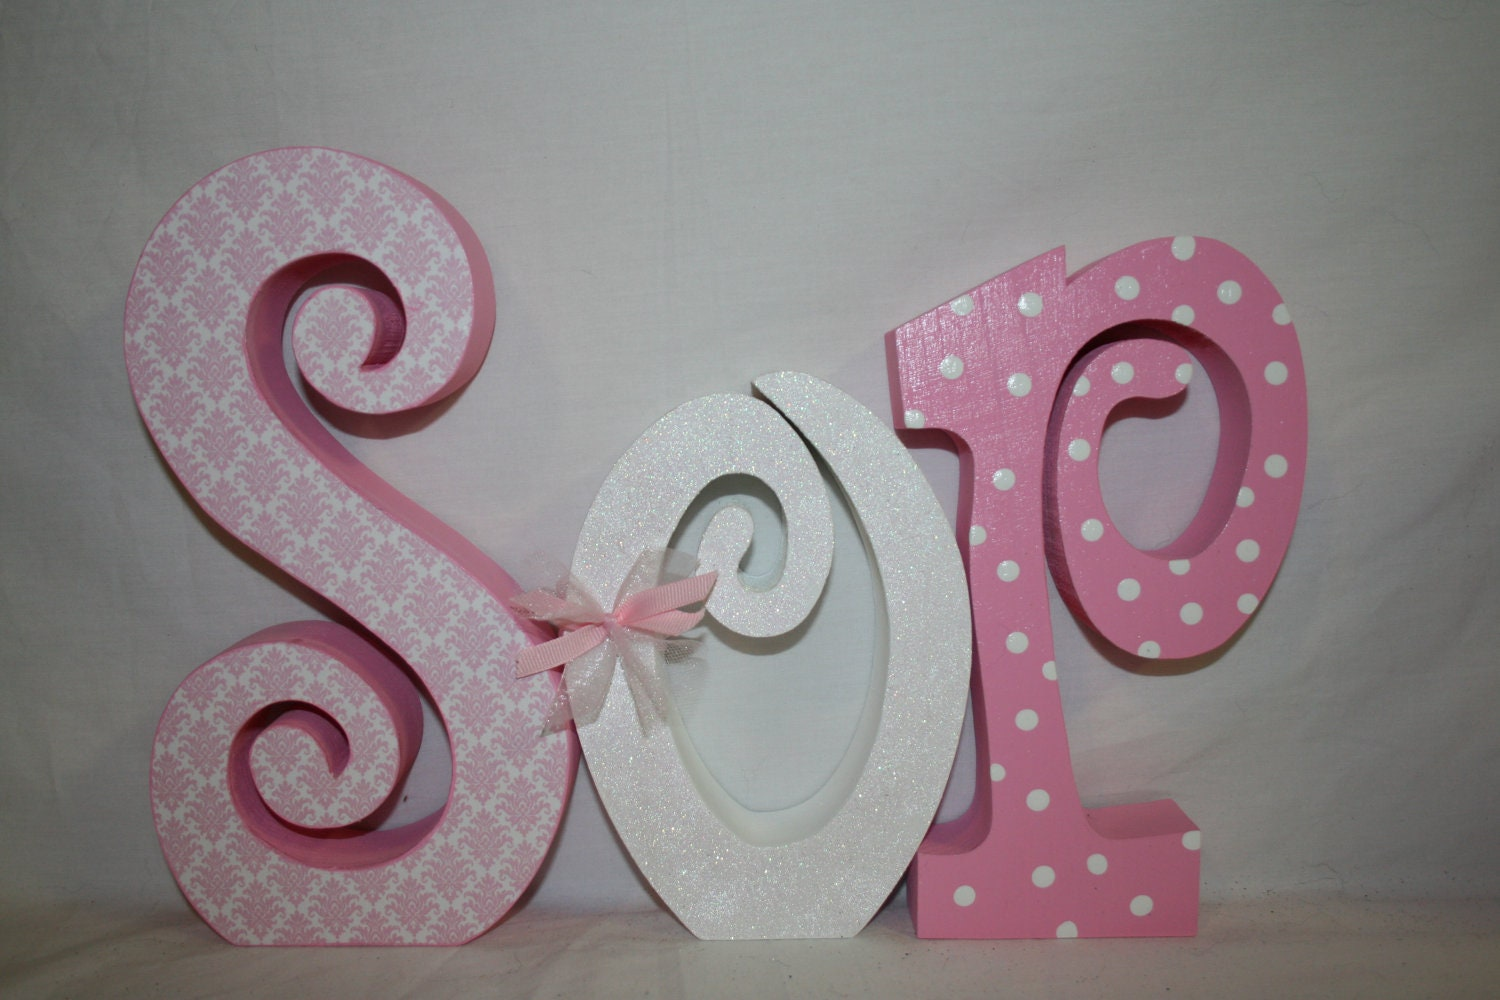 How To Decorate Wooden Letters For Nursery: Decorative Girl Nursery Letters Wood Letters By